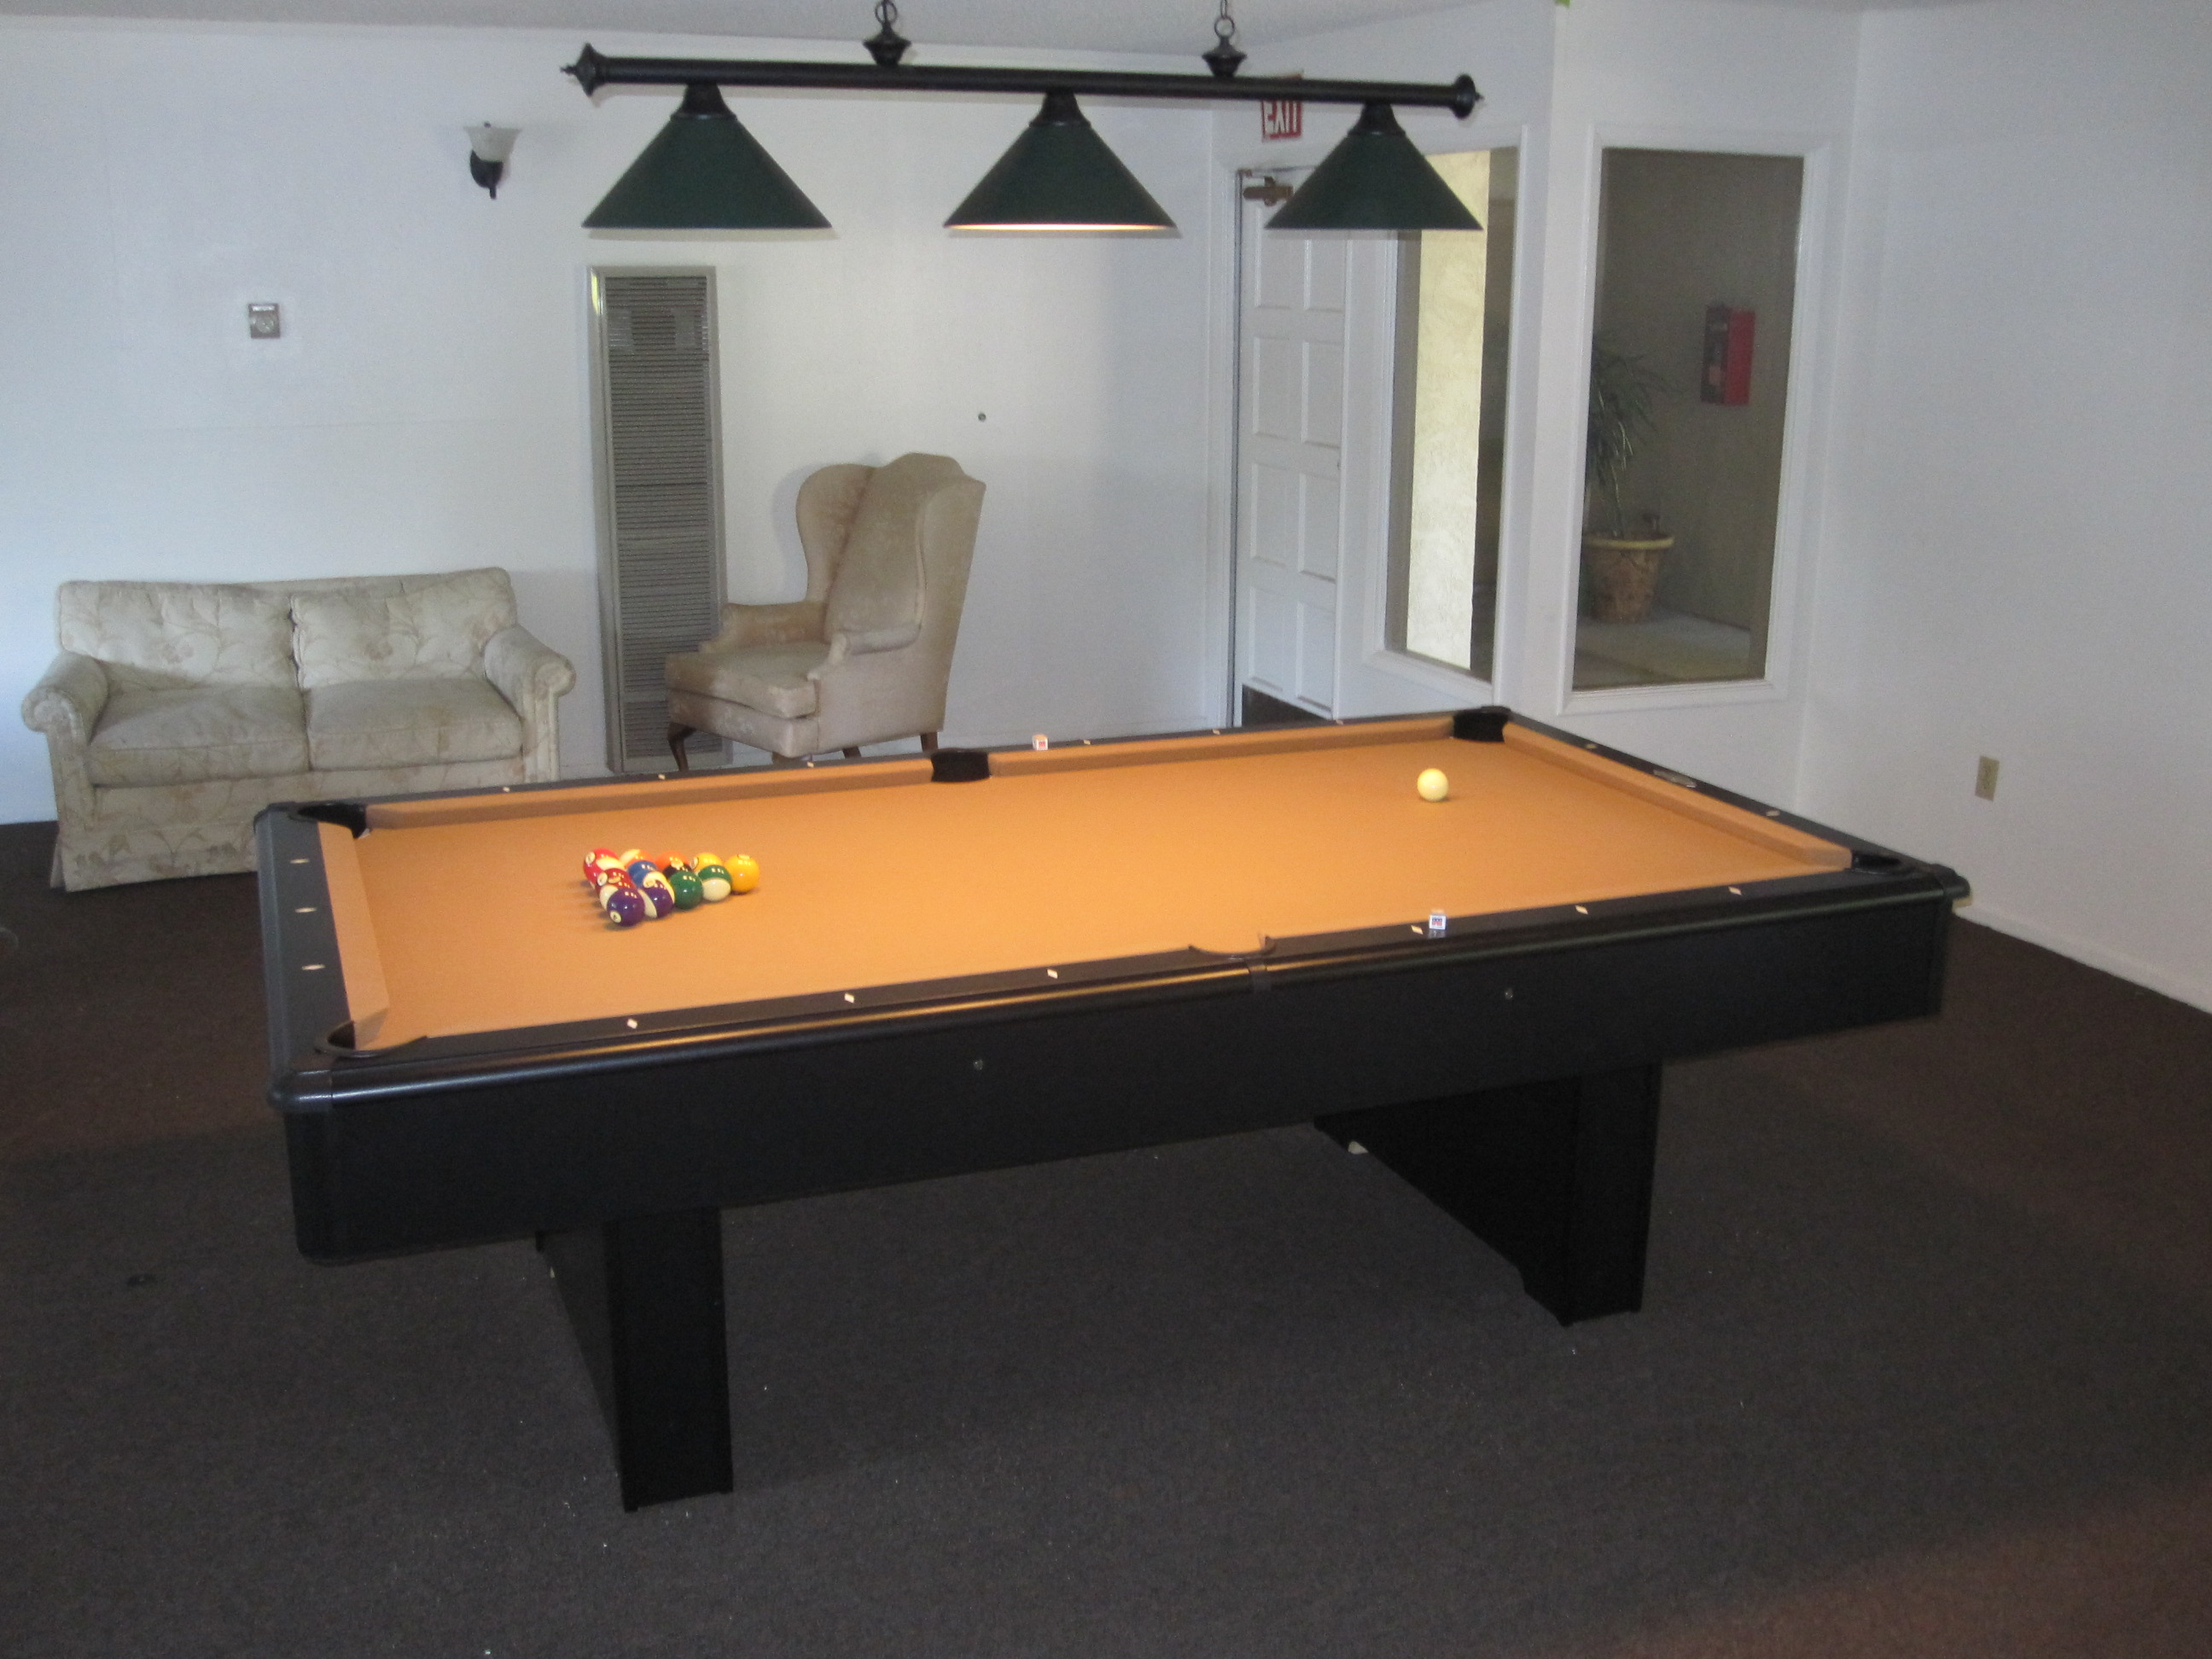 Here We Are At Casa Loma Apartments In Tustin, CA To Swap Out An Old 1960u0027s  U201cbar Pool Tableu201d. This 45 Year Old Fischer Coin Operated Pool Table Is  Being ...